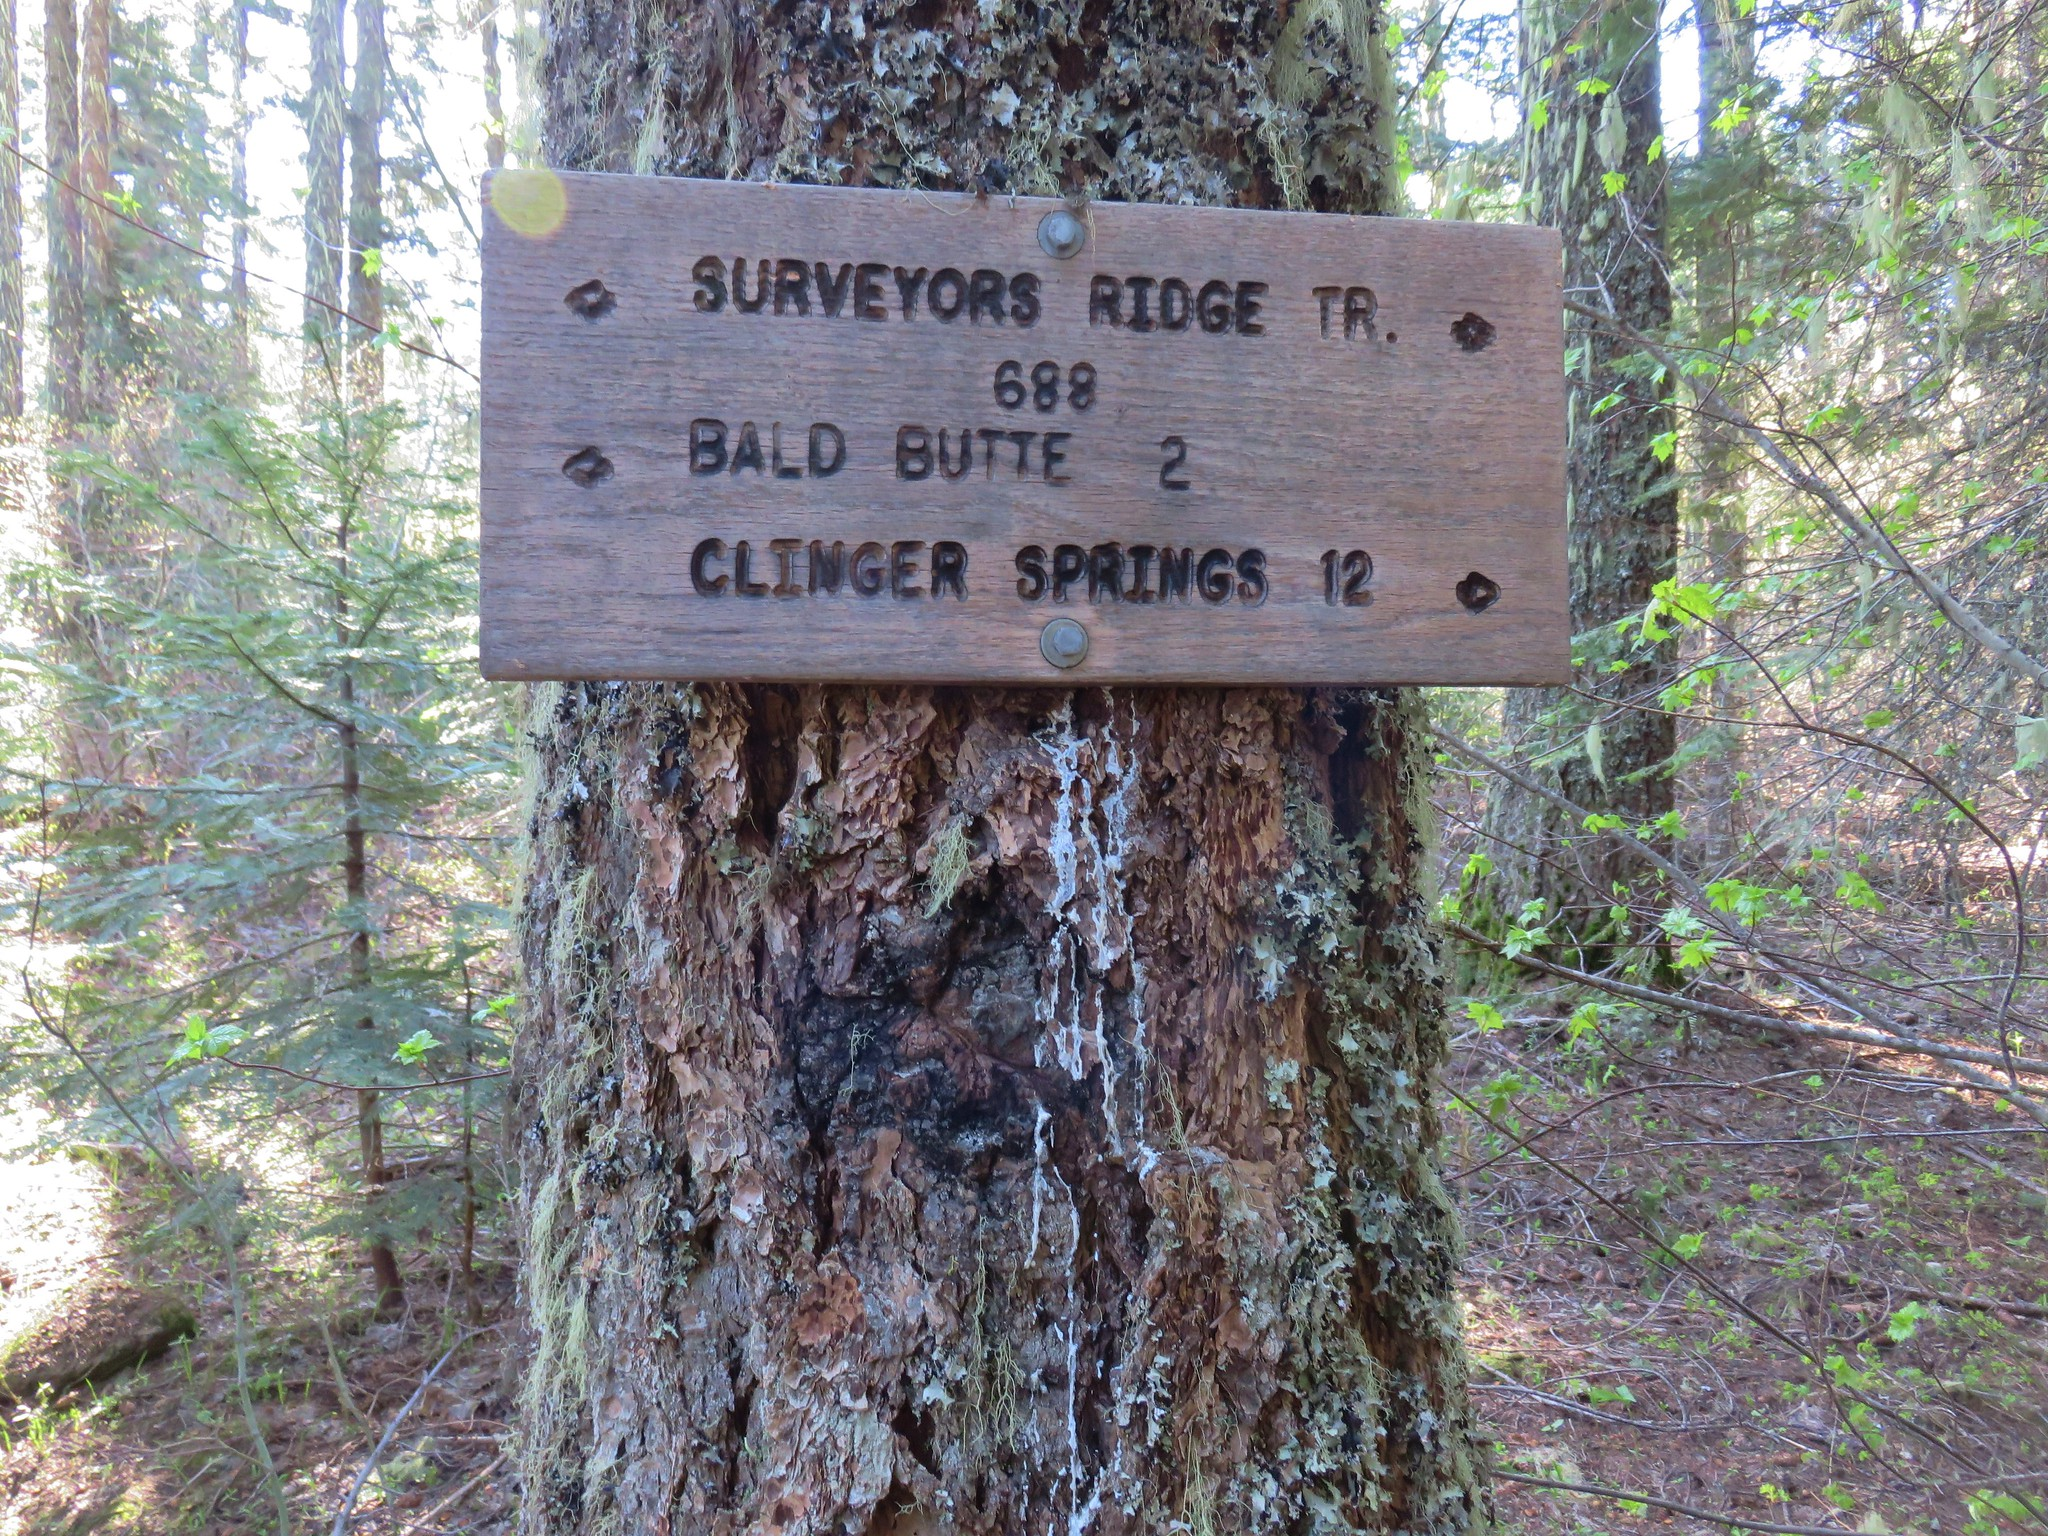 Surveyor's Ridge Trail sign